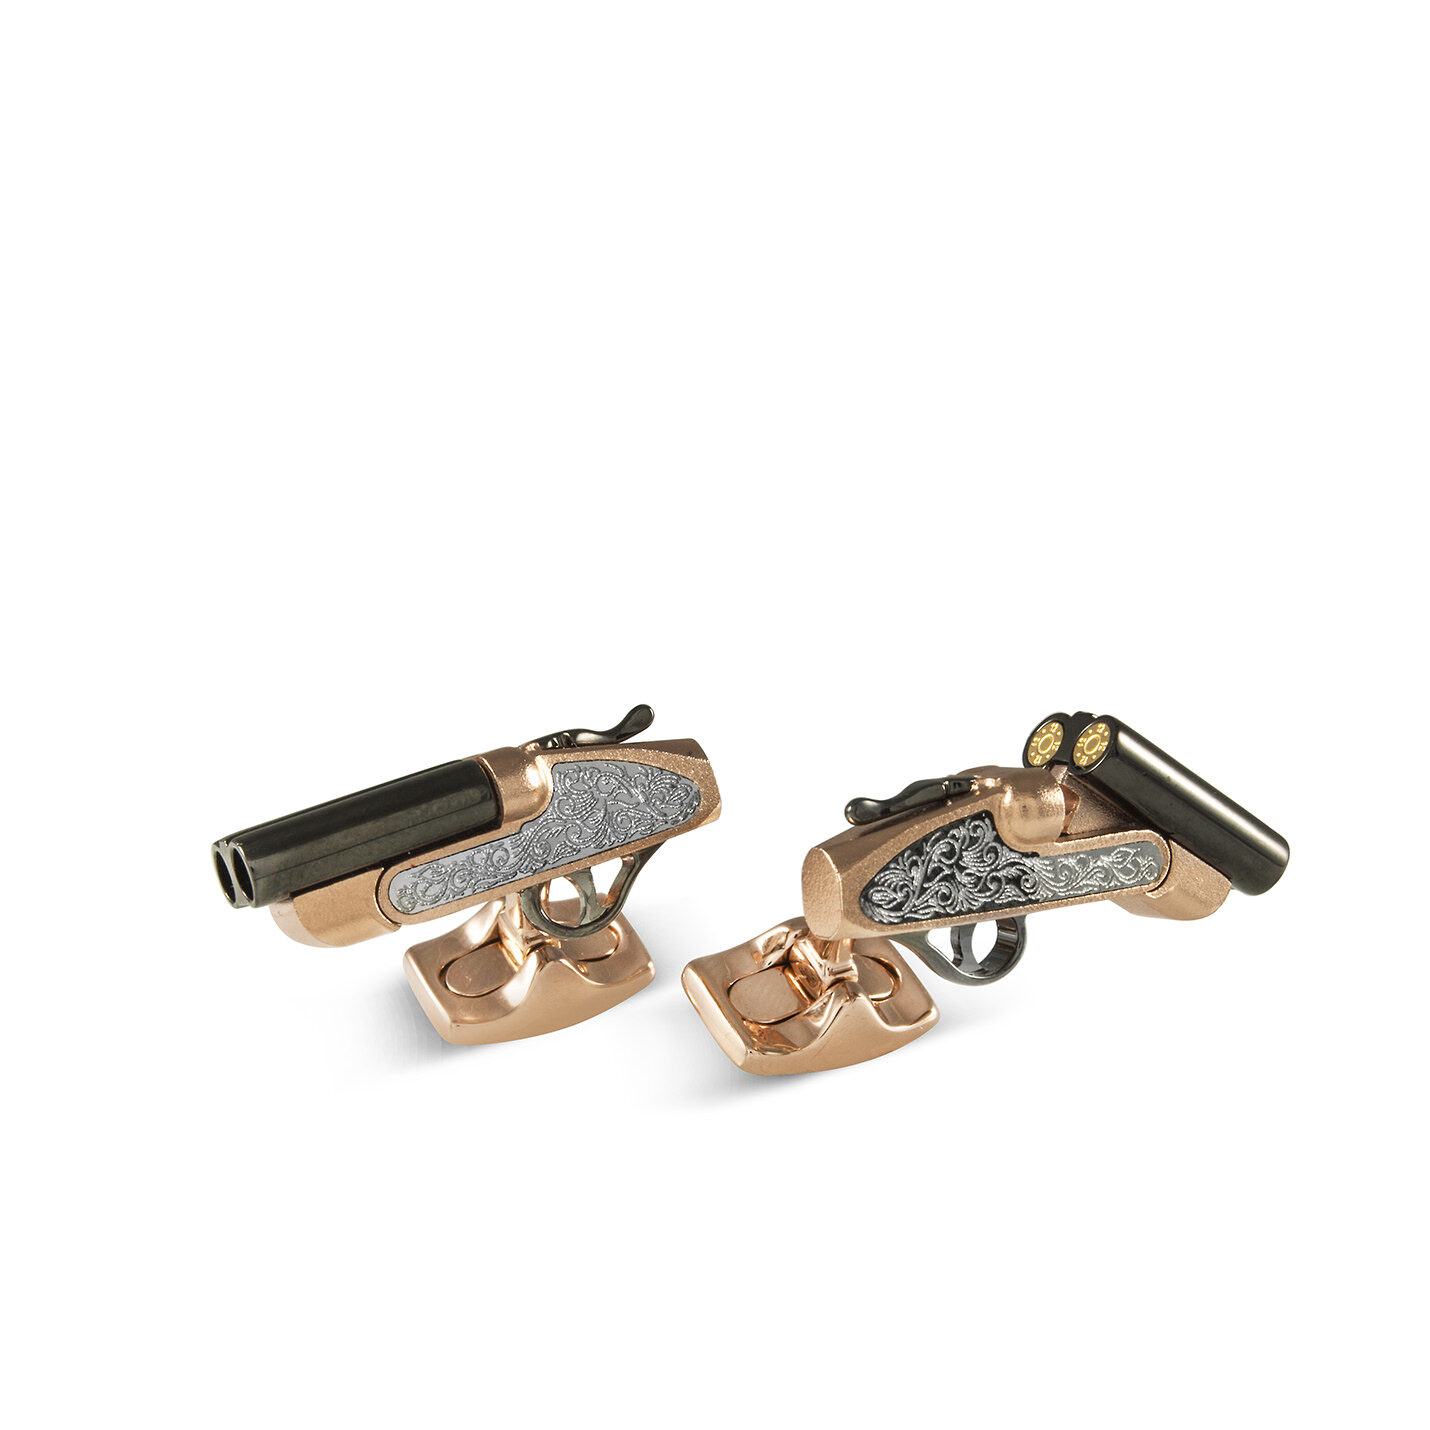 Deakin & Francis Shotgun Cuff Links